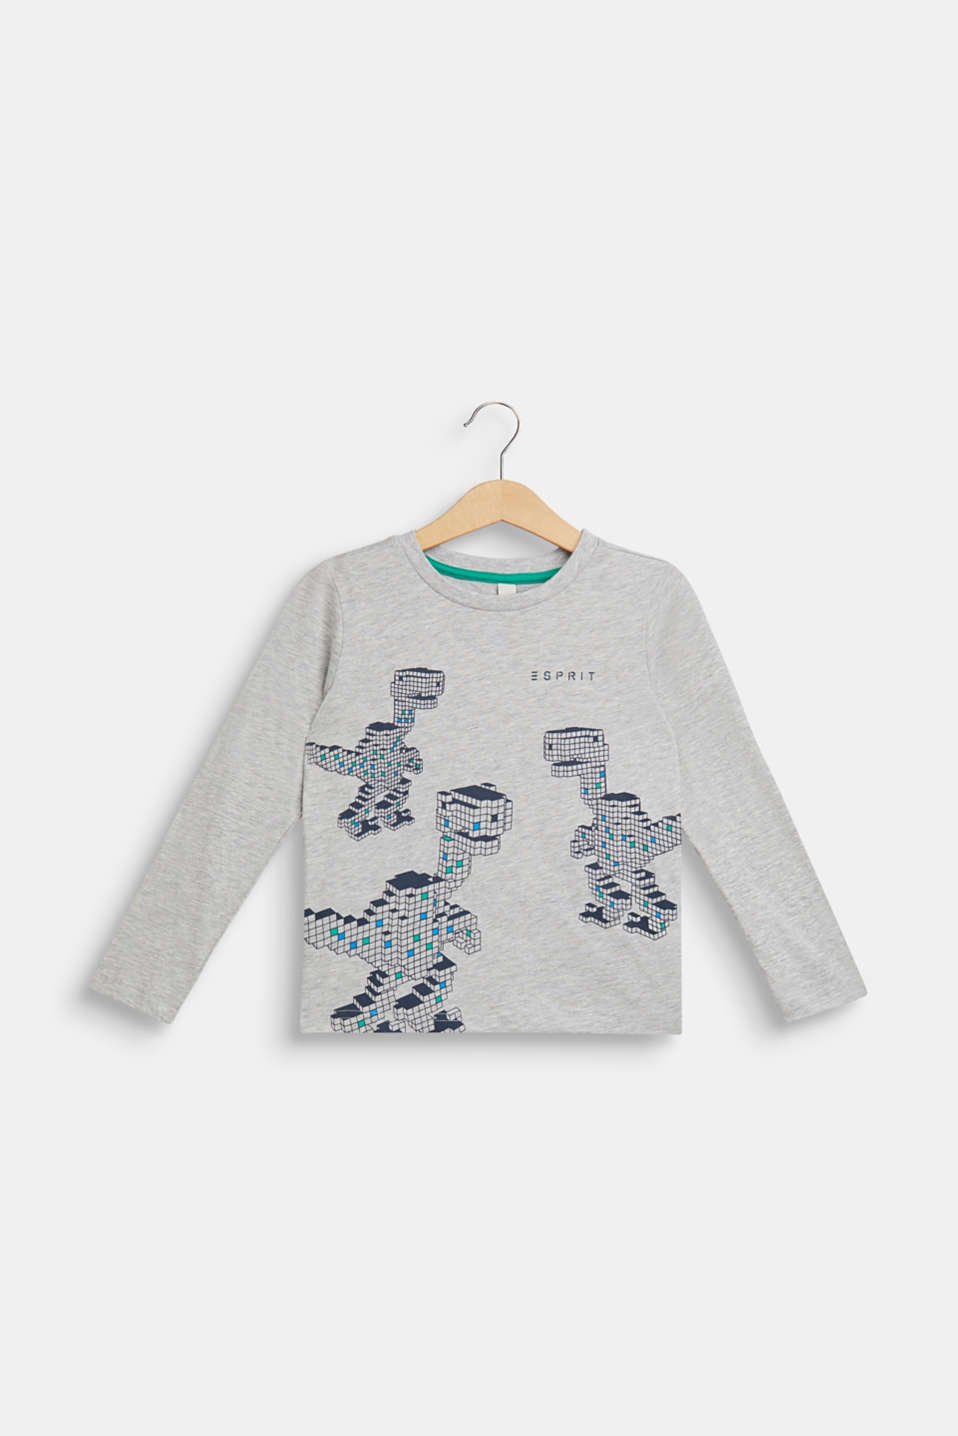 Esprit - Dinosaur print long sleeve top